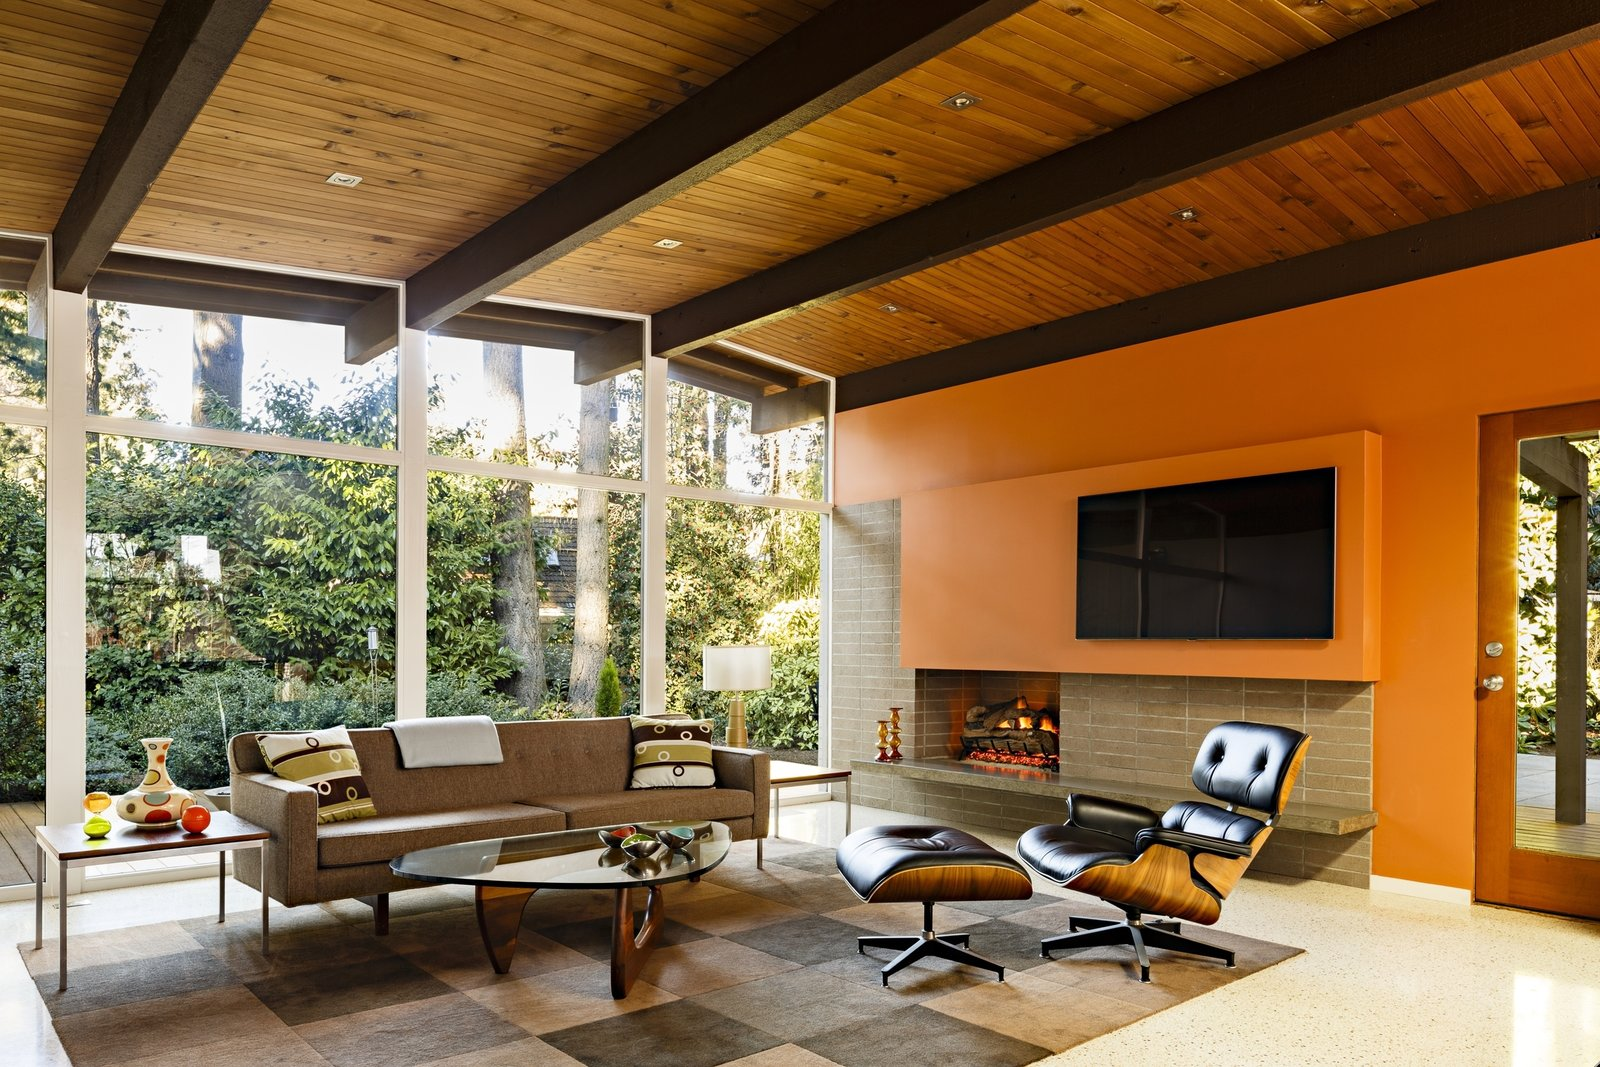 The dark wood floors were replaced by light-colored terrazzo that gives the interiors a brighter feel.